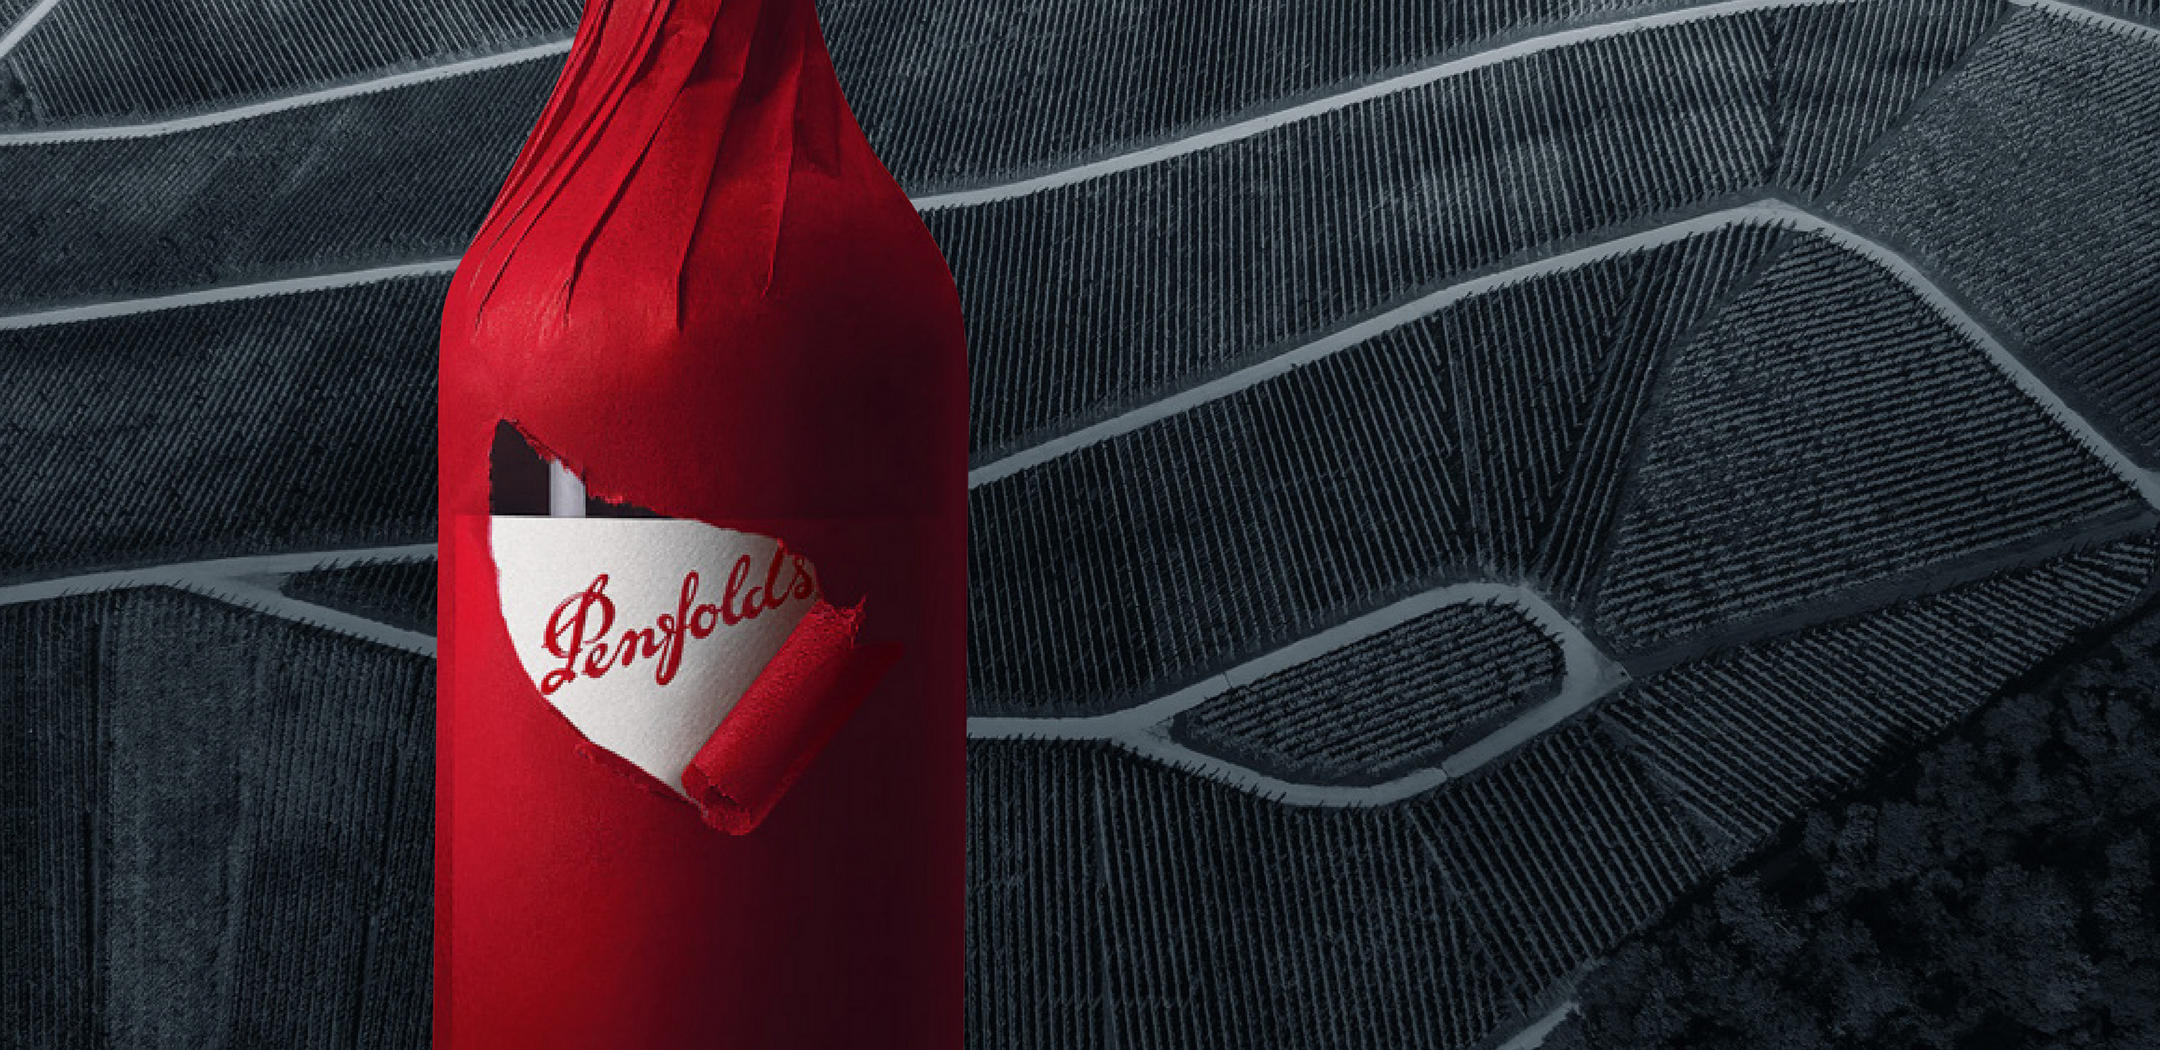 Penfolds' annual release